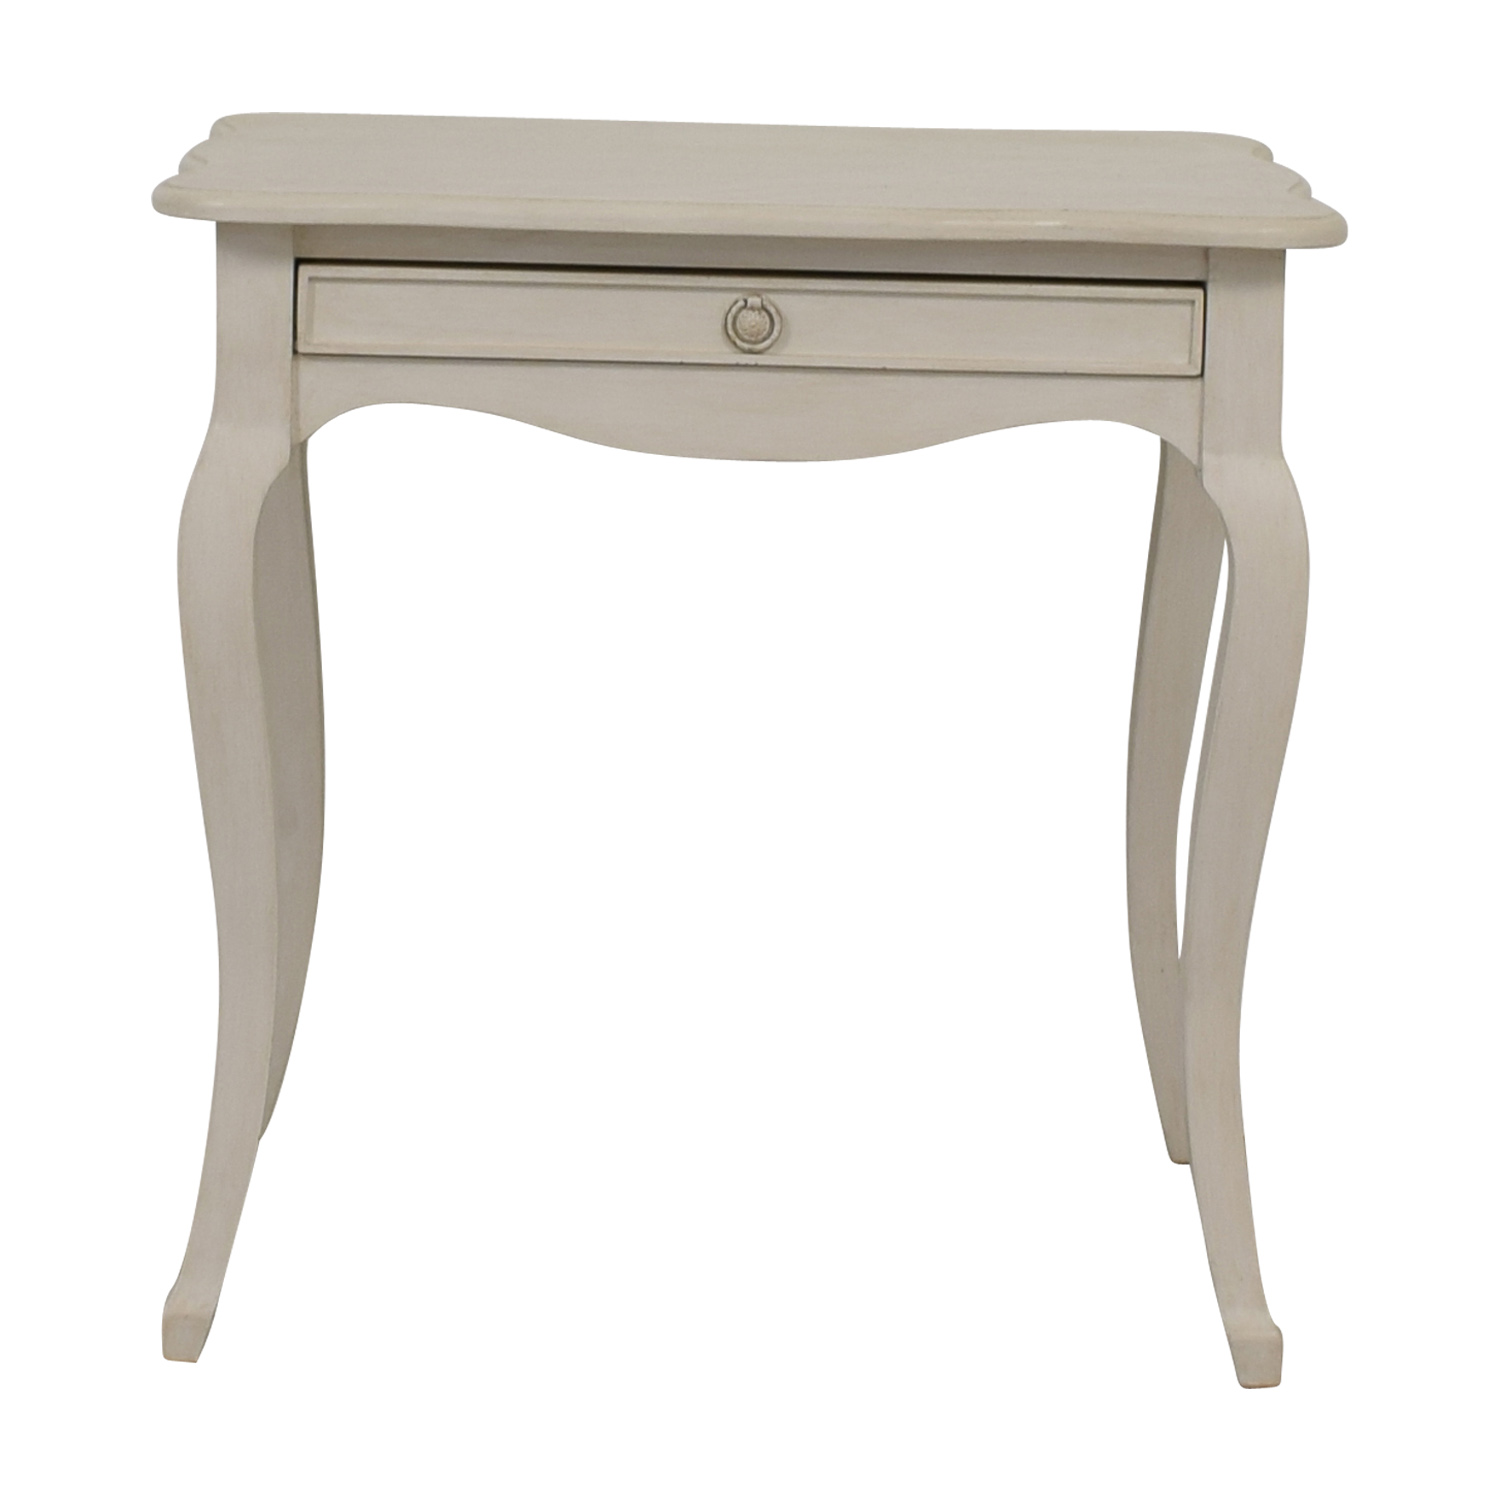 Off White Single-Drawer Night Table / Tables